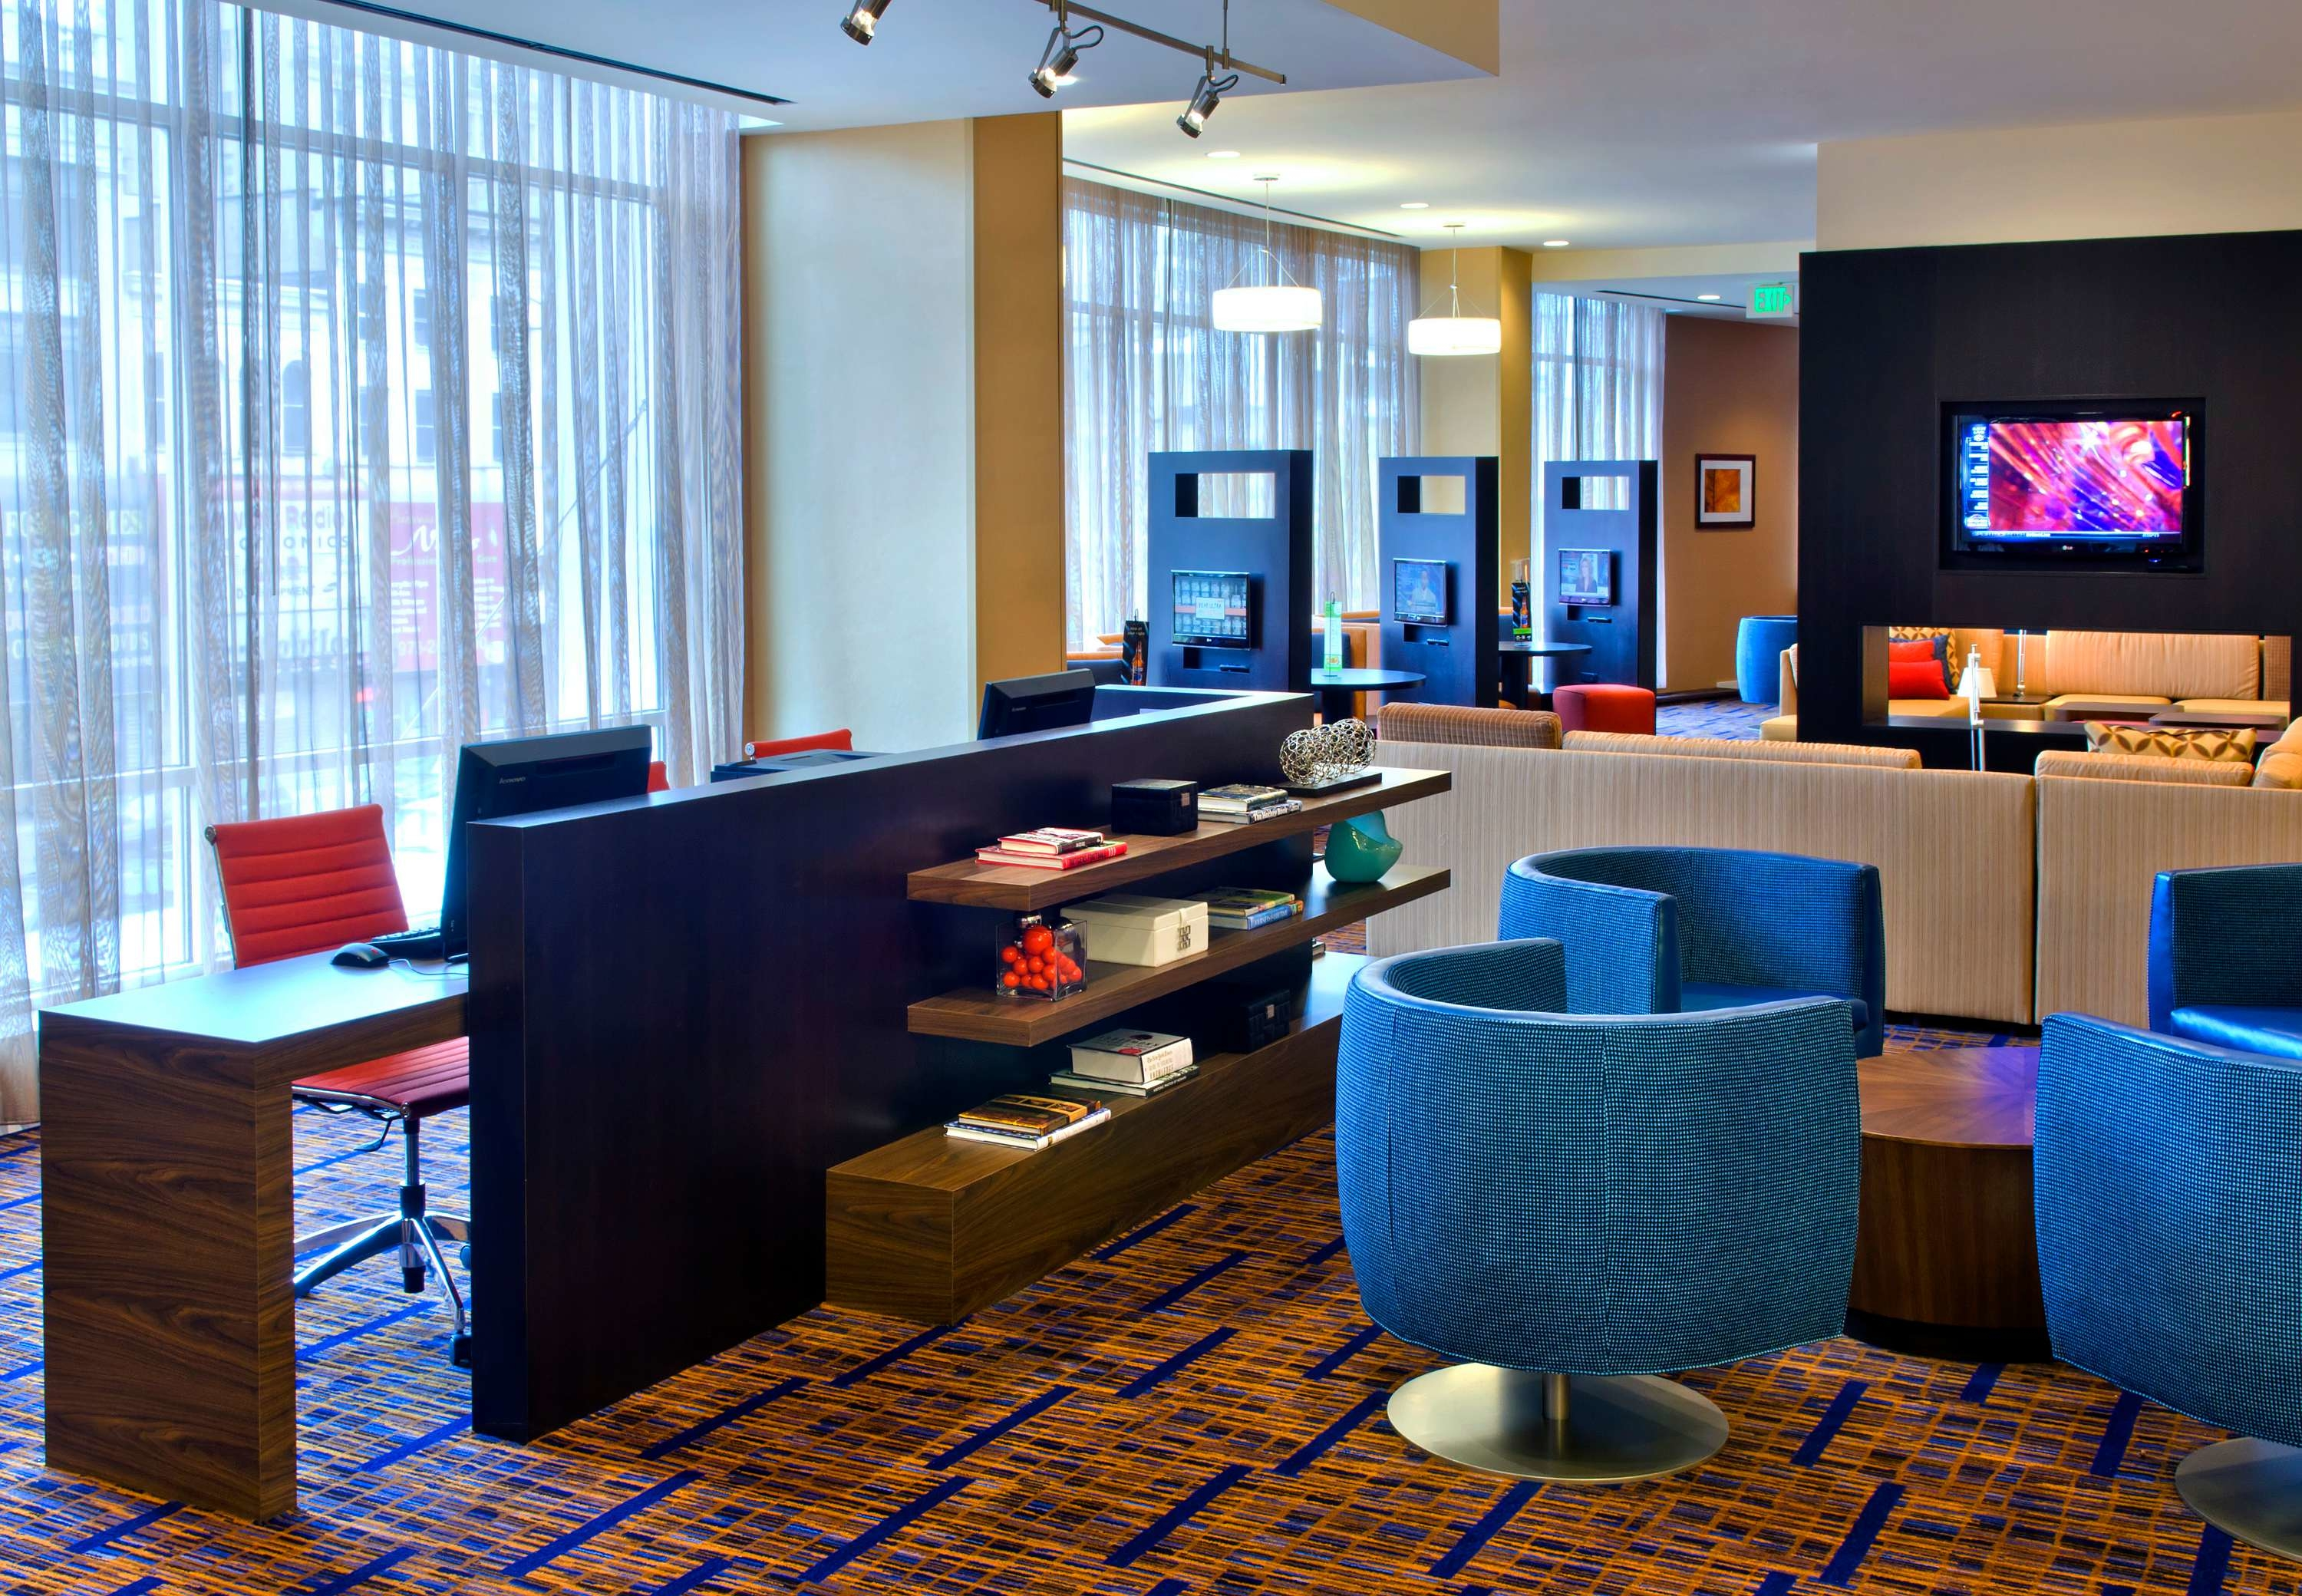 Courtyard by Marriott Newark Downtown image 16